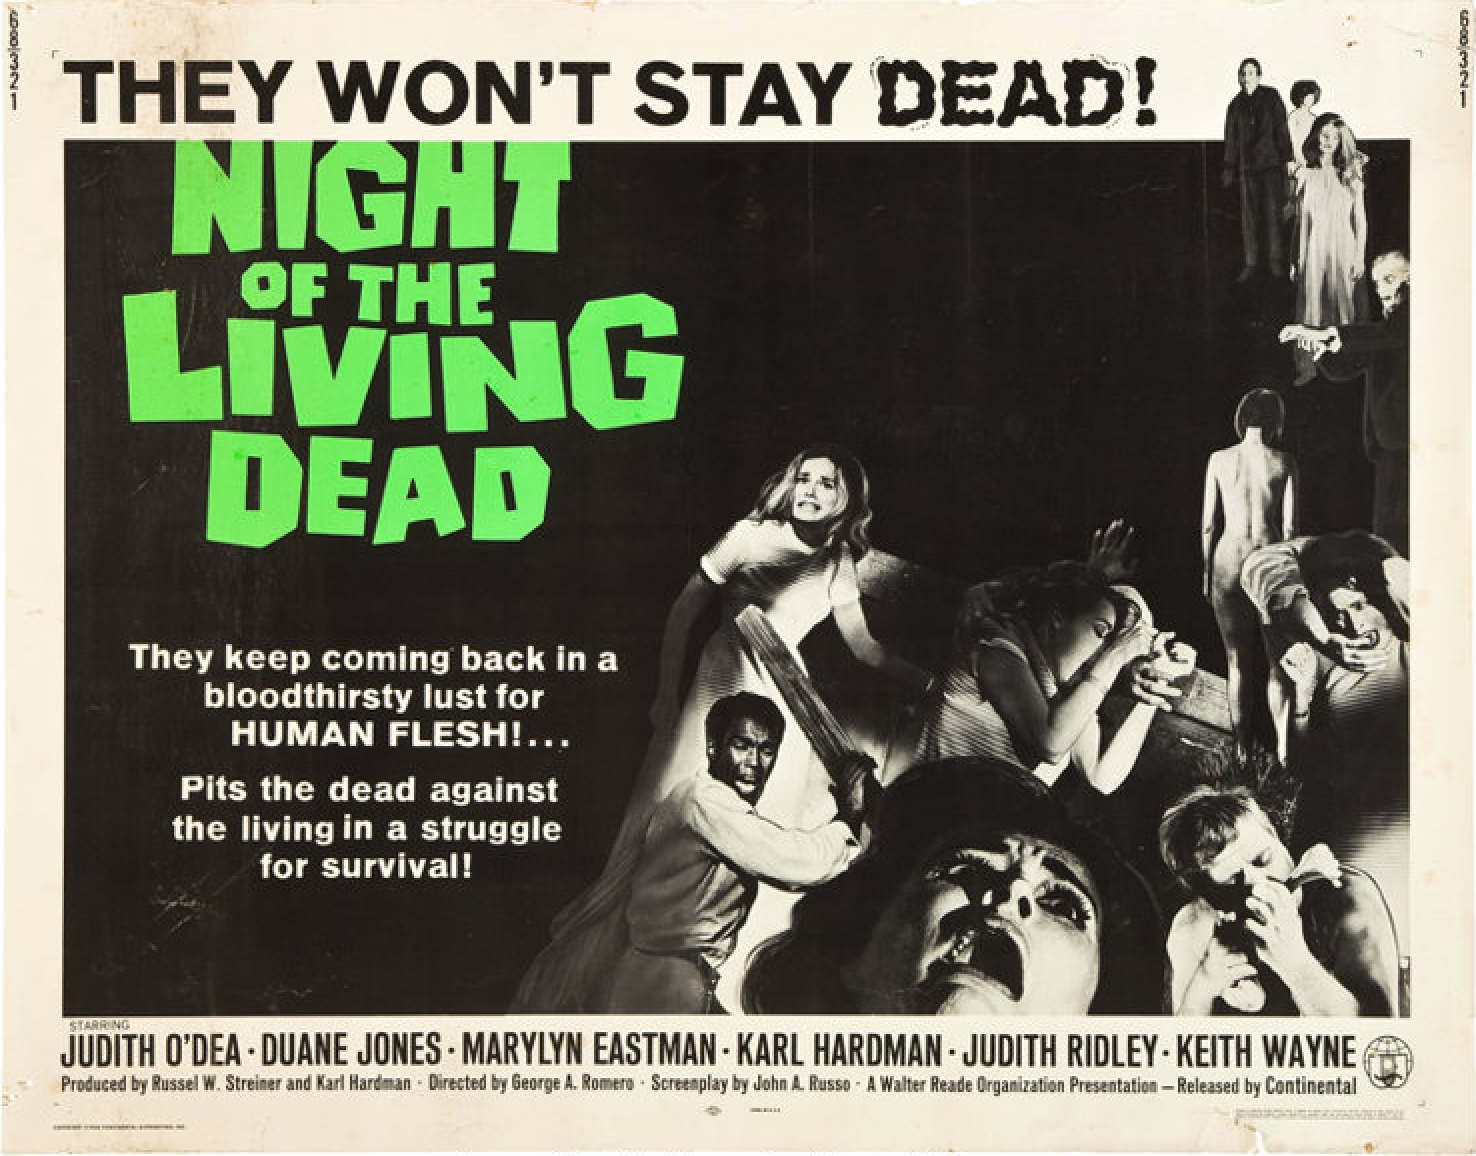 Night of the living dead vintage horror movie poster #3